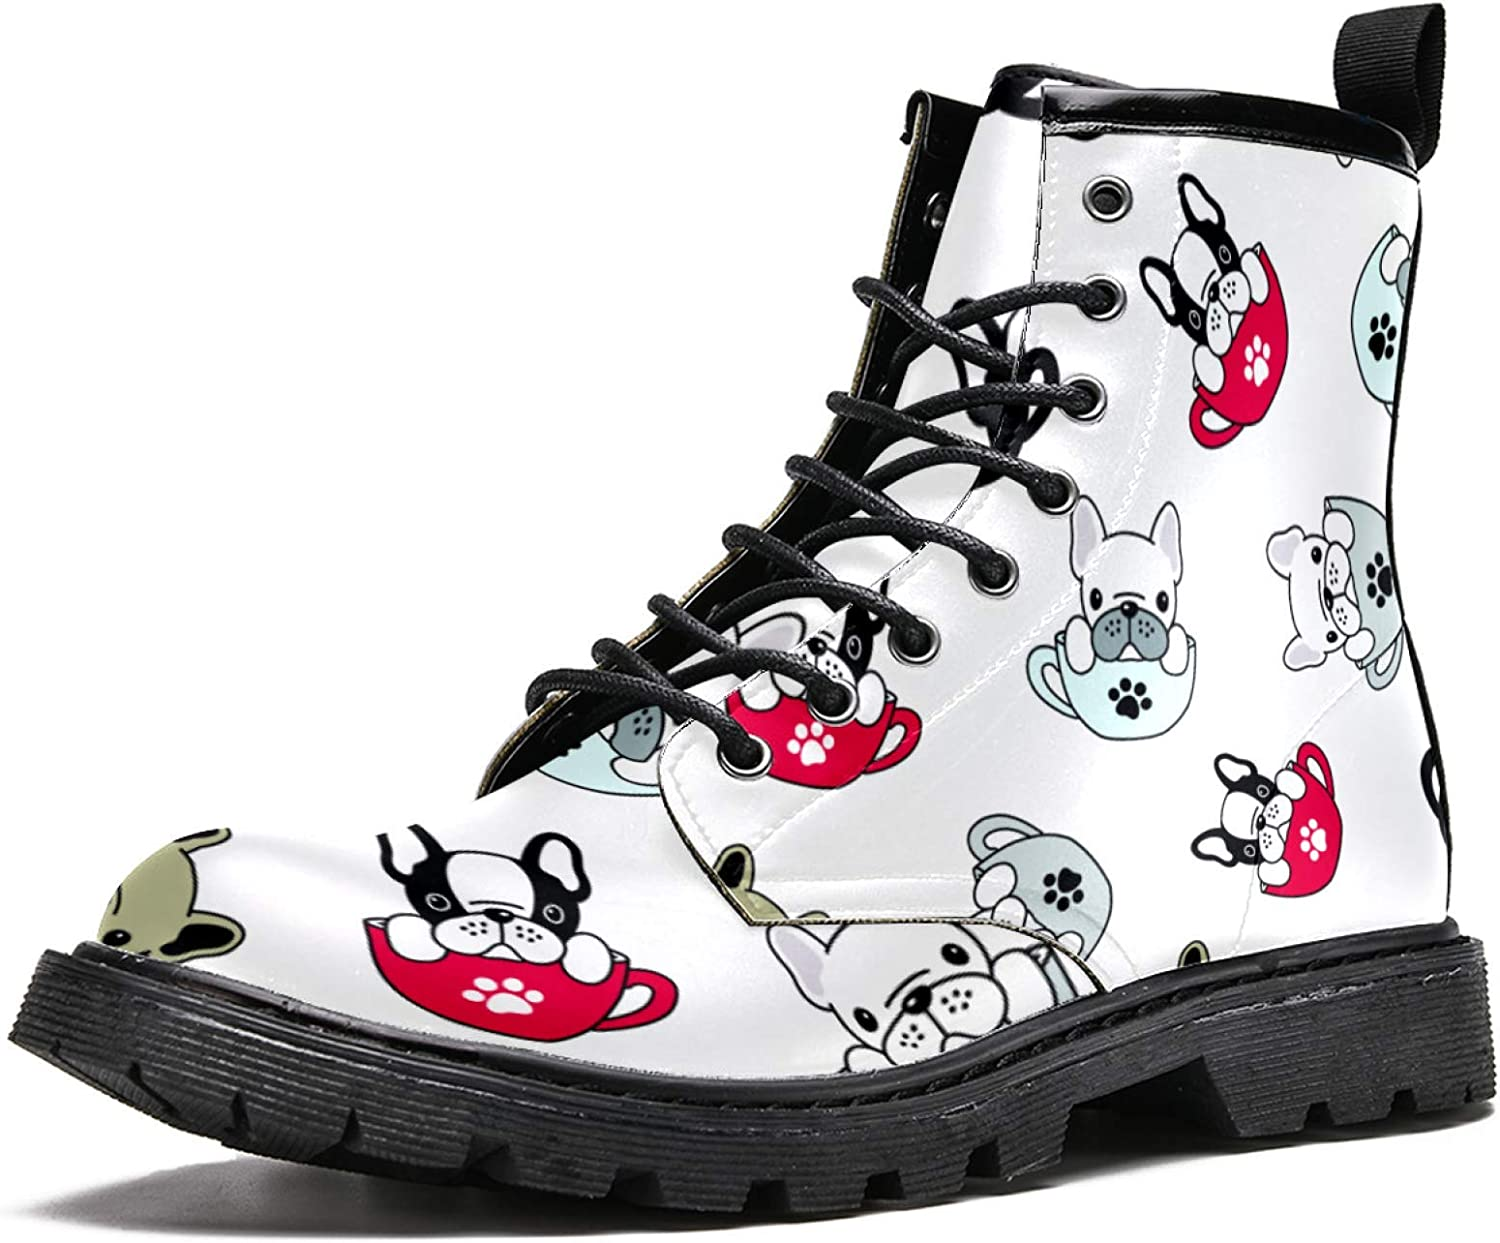 WNENG Men's High-Top wholesale Fashion Special price for a limited time Boot Pug Bulldog